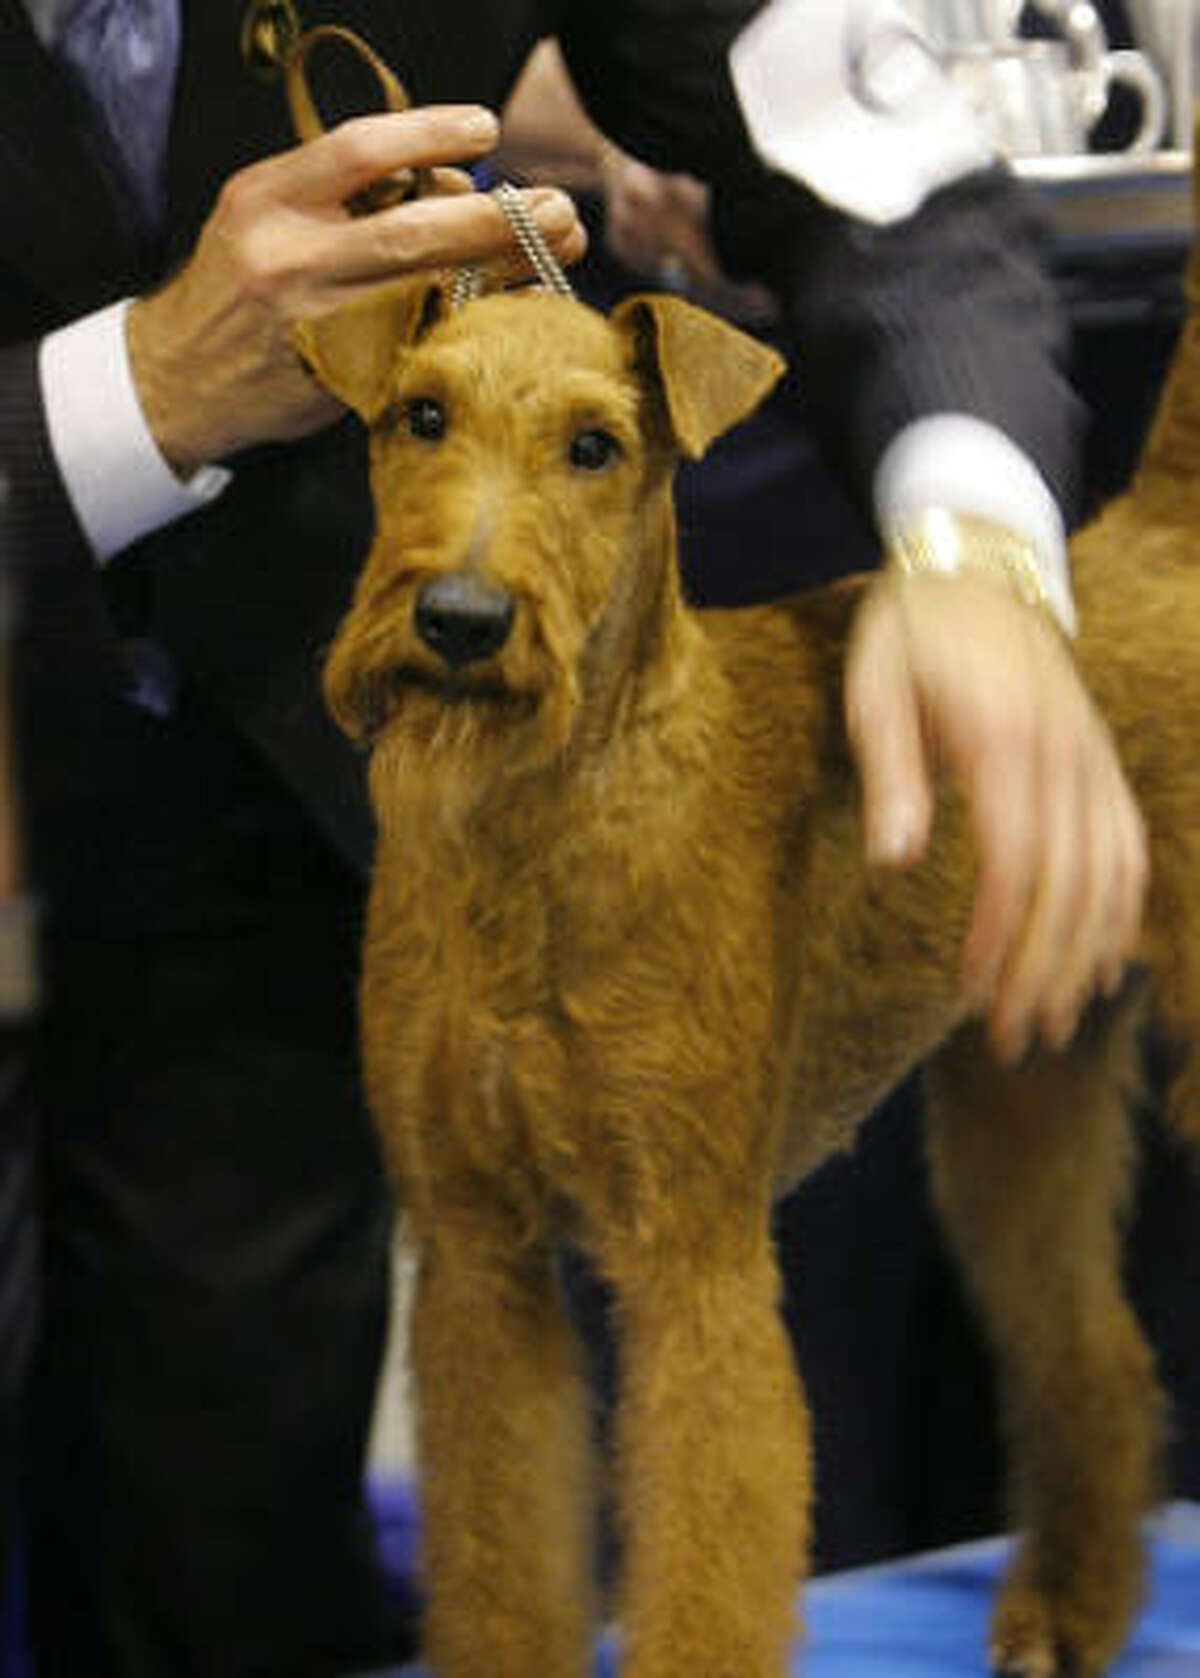 Irish terrier: Cast as hero in the 2007 movie Firehouse Dog and used to transport messages between troops on the front lines of WW1. Their bravery and spirit make them incomparable pets, and they're also known for tenacity, loyality and friendliness.